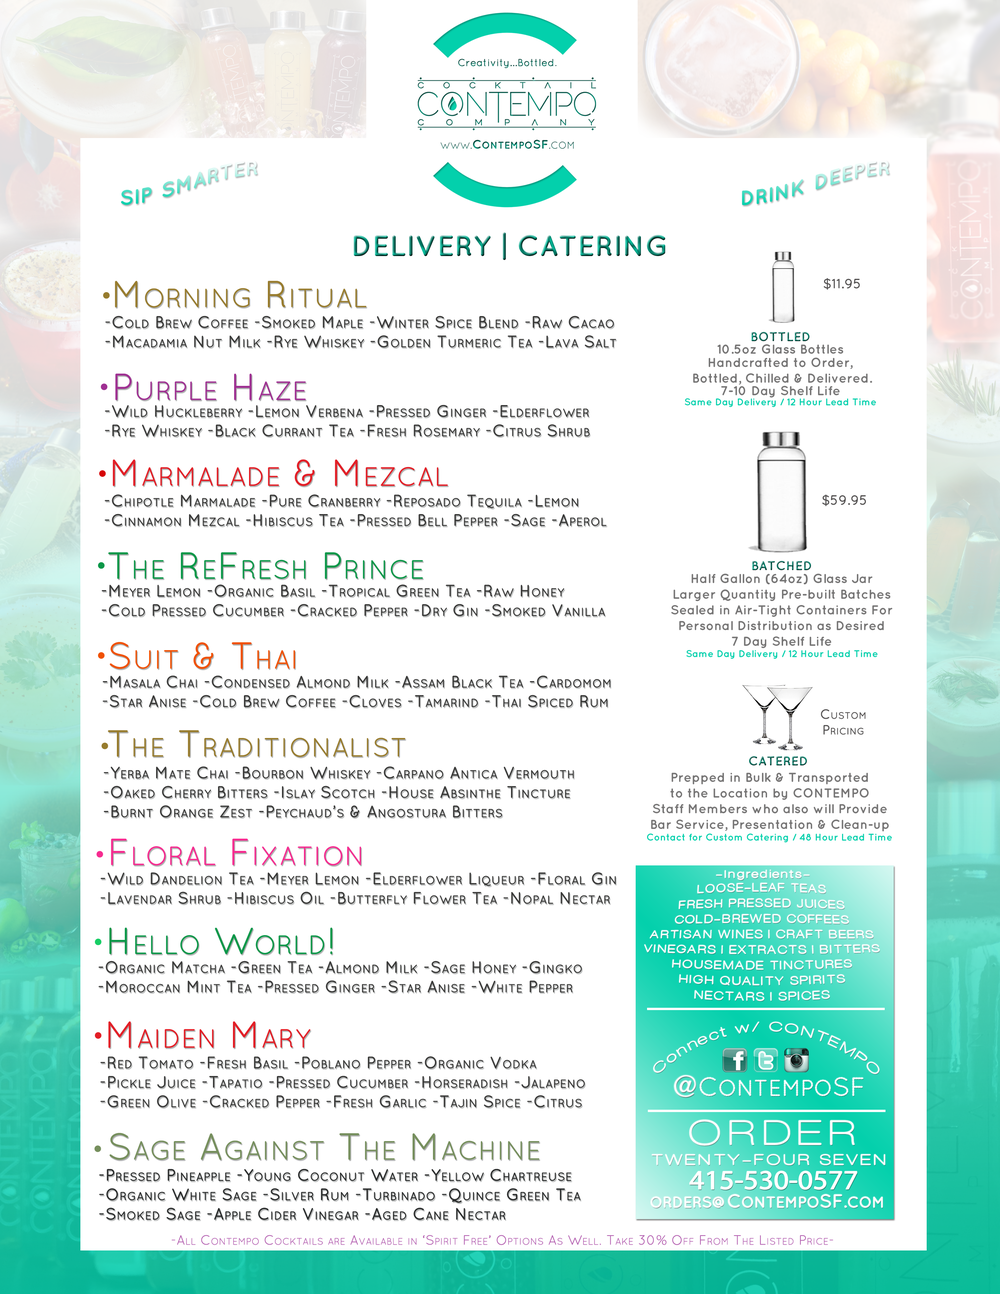 Delivery Catering Menu 11-17-17.png